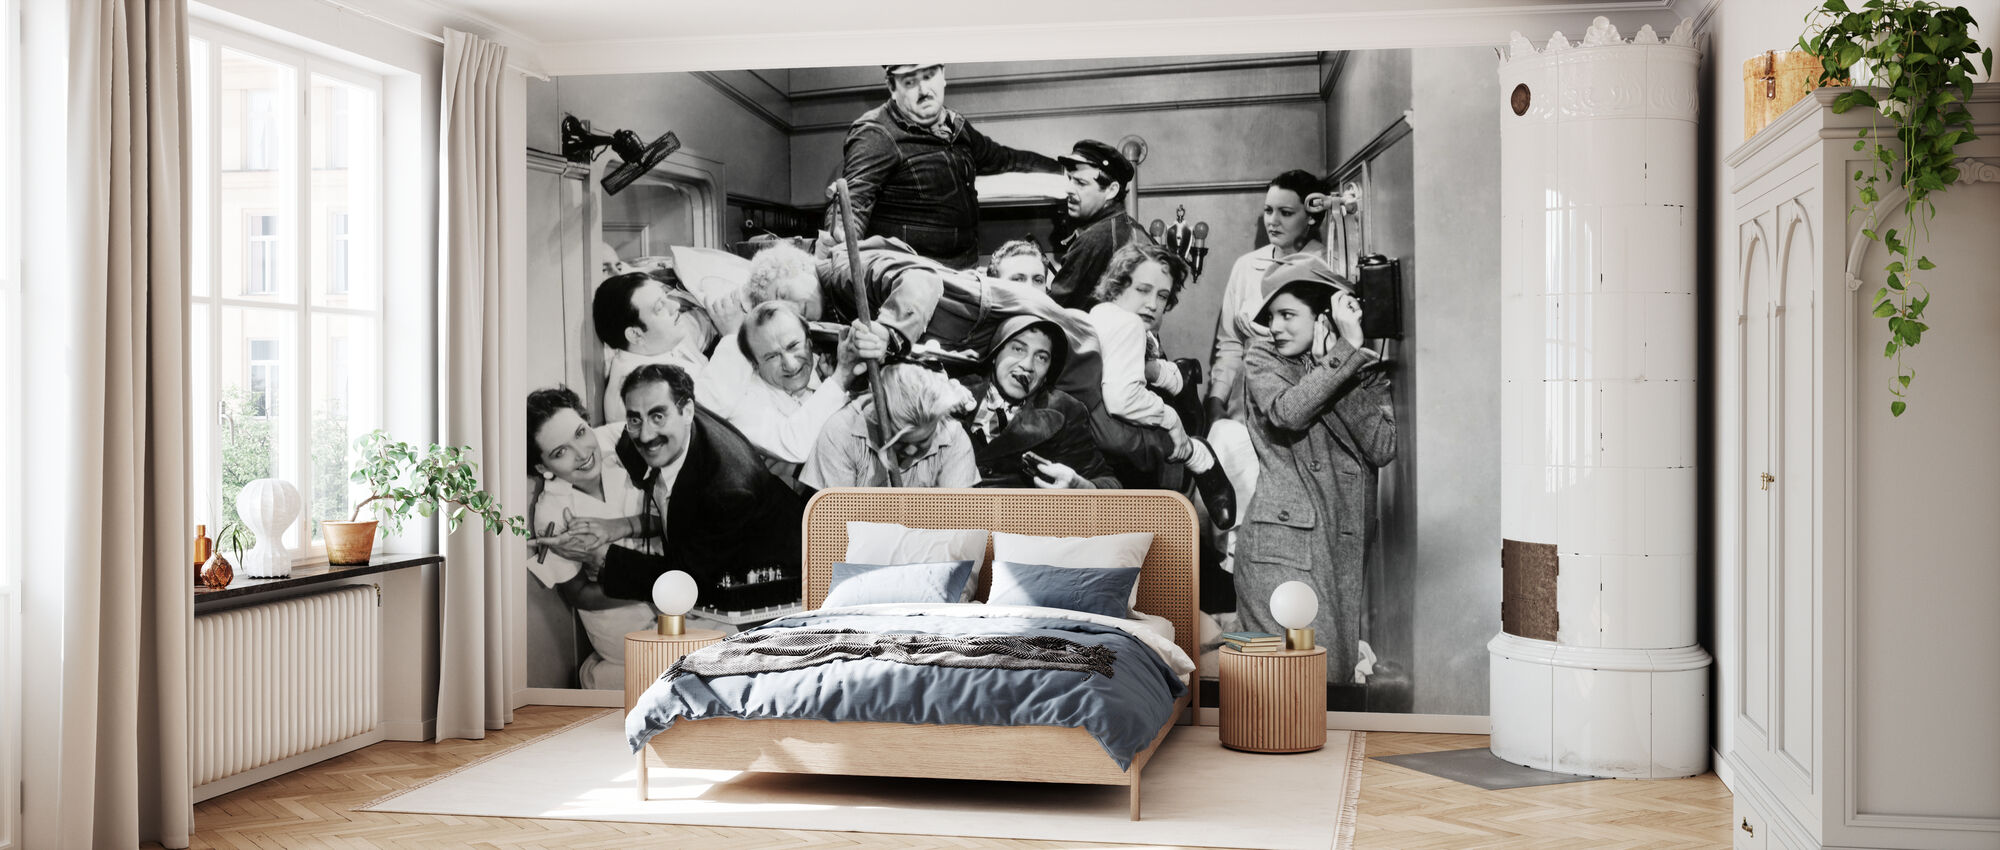 Marx Brothers - Wallpaper - Bedroom